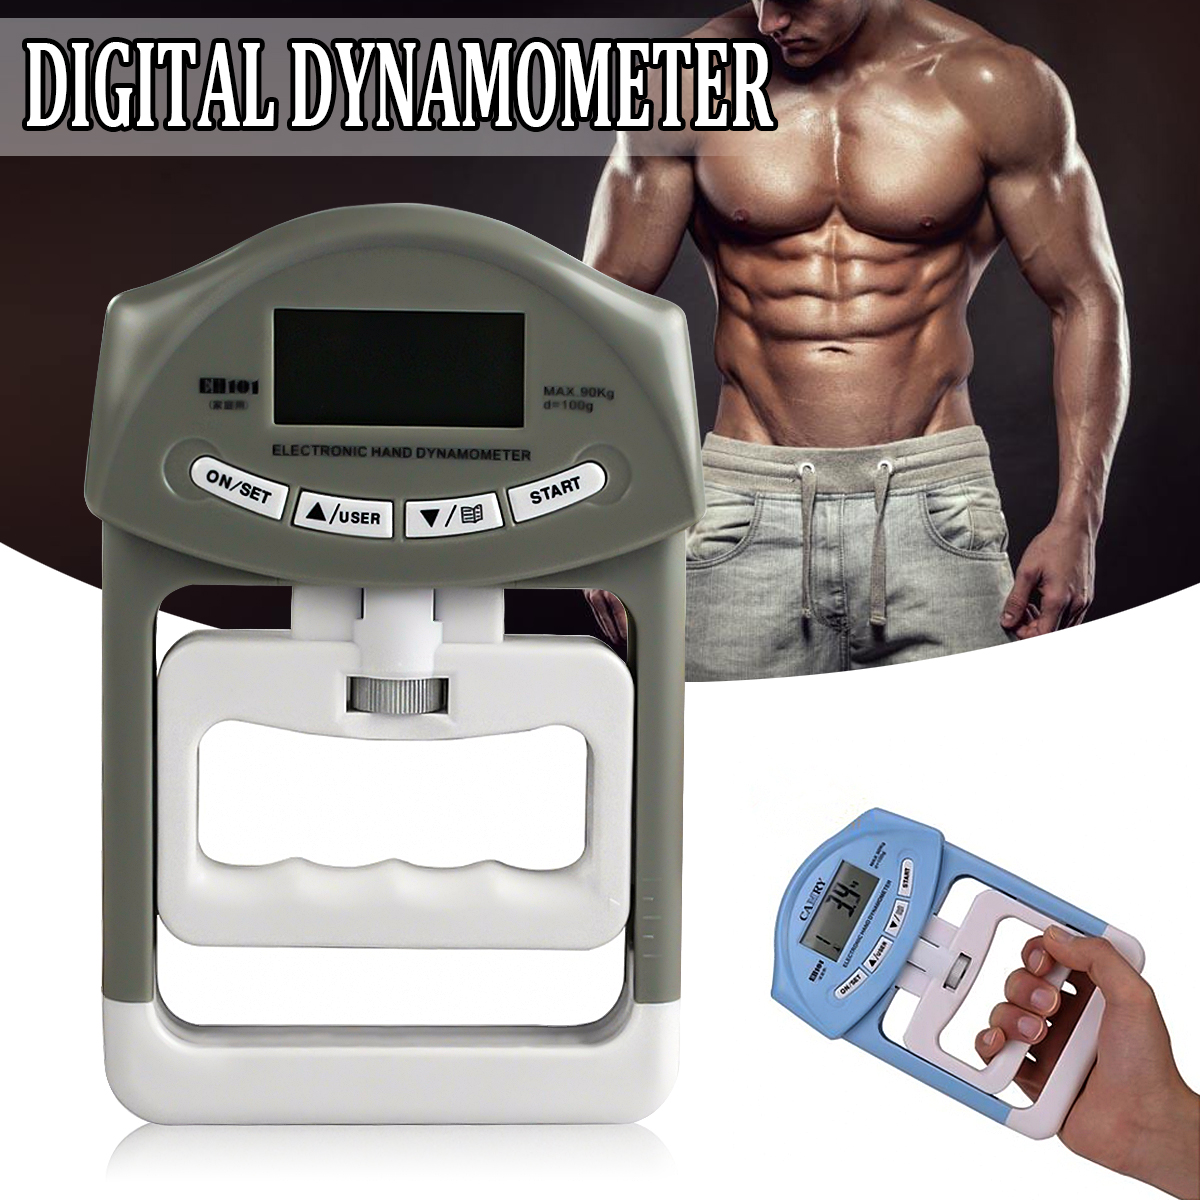 Digital Electronic Hand Grip Strength Dynamometer Meter with Large LCD Measuring range 90kg/198Ib Grip Strength Measurement Meter Auto Capturing Hand Grip Power Device